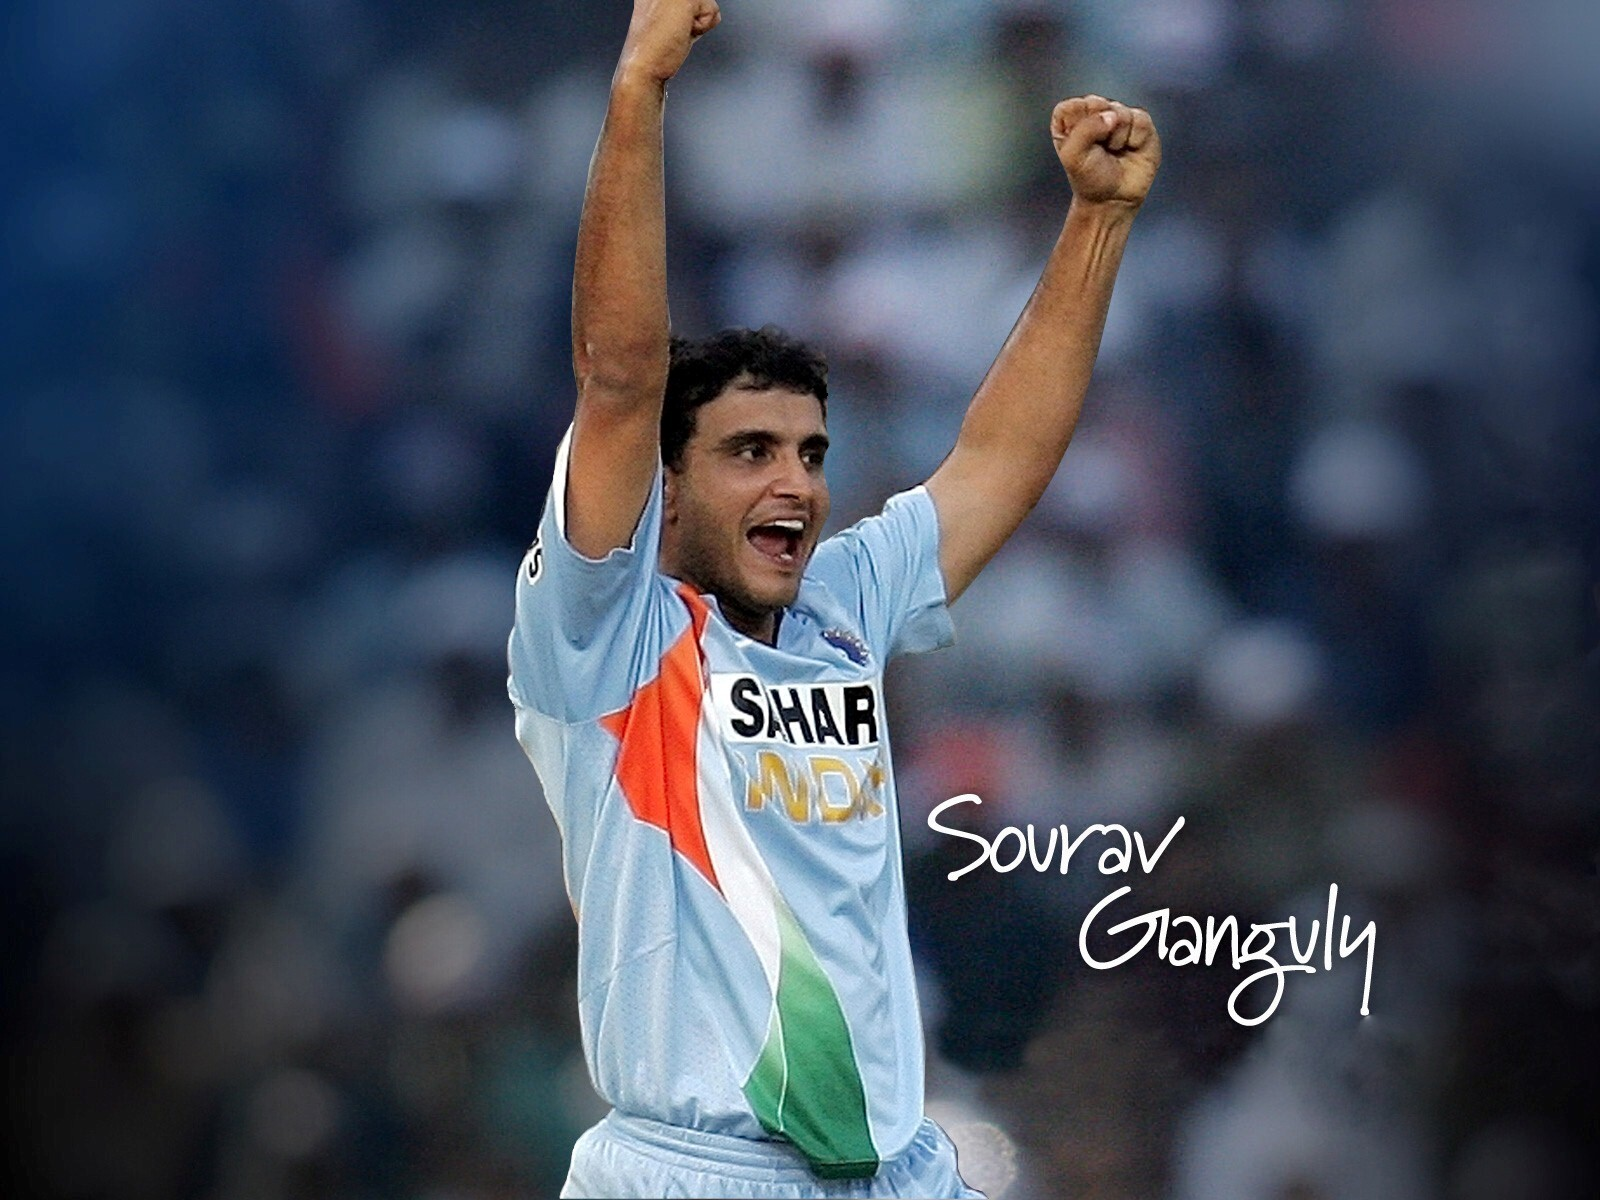 Sourav Ganguly Indian Captain Wallpapers | HD Wallpapers